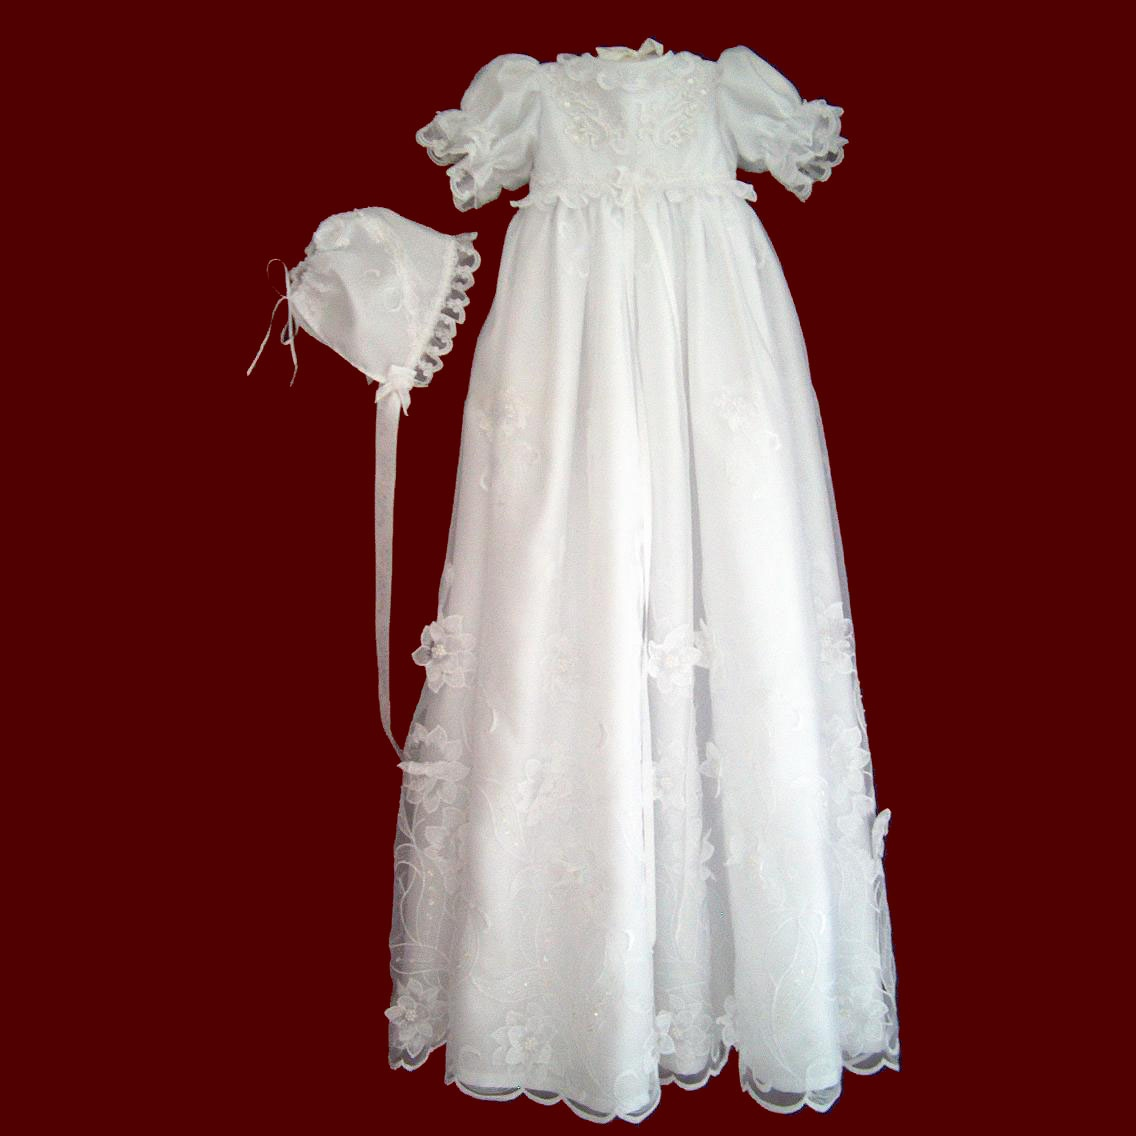 Christening Gowns From Wedding Dresses: Beaded Organza With Flowers Christening Gown, Slip